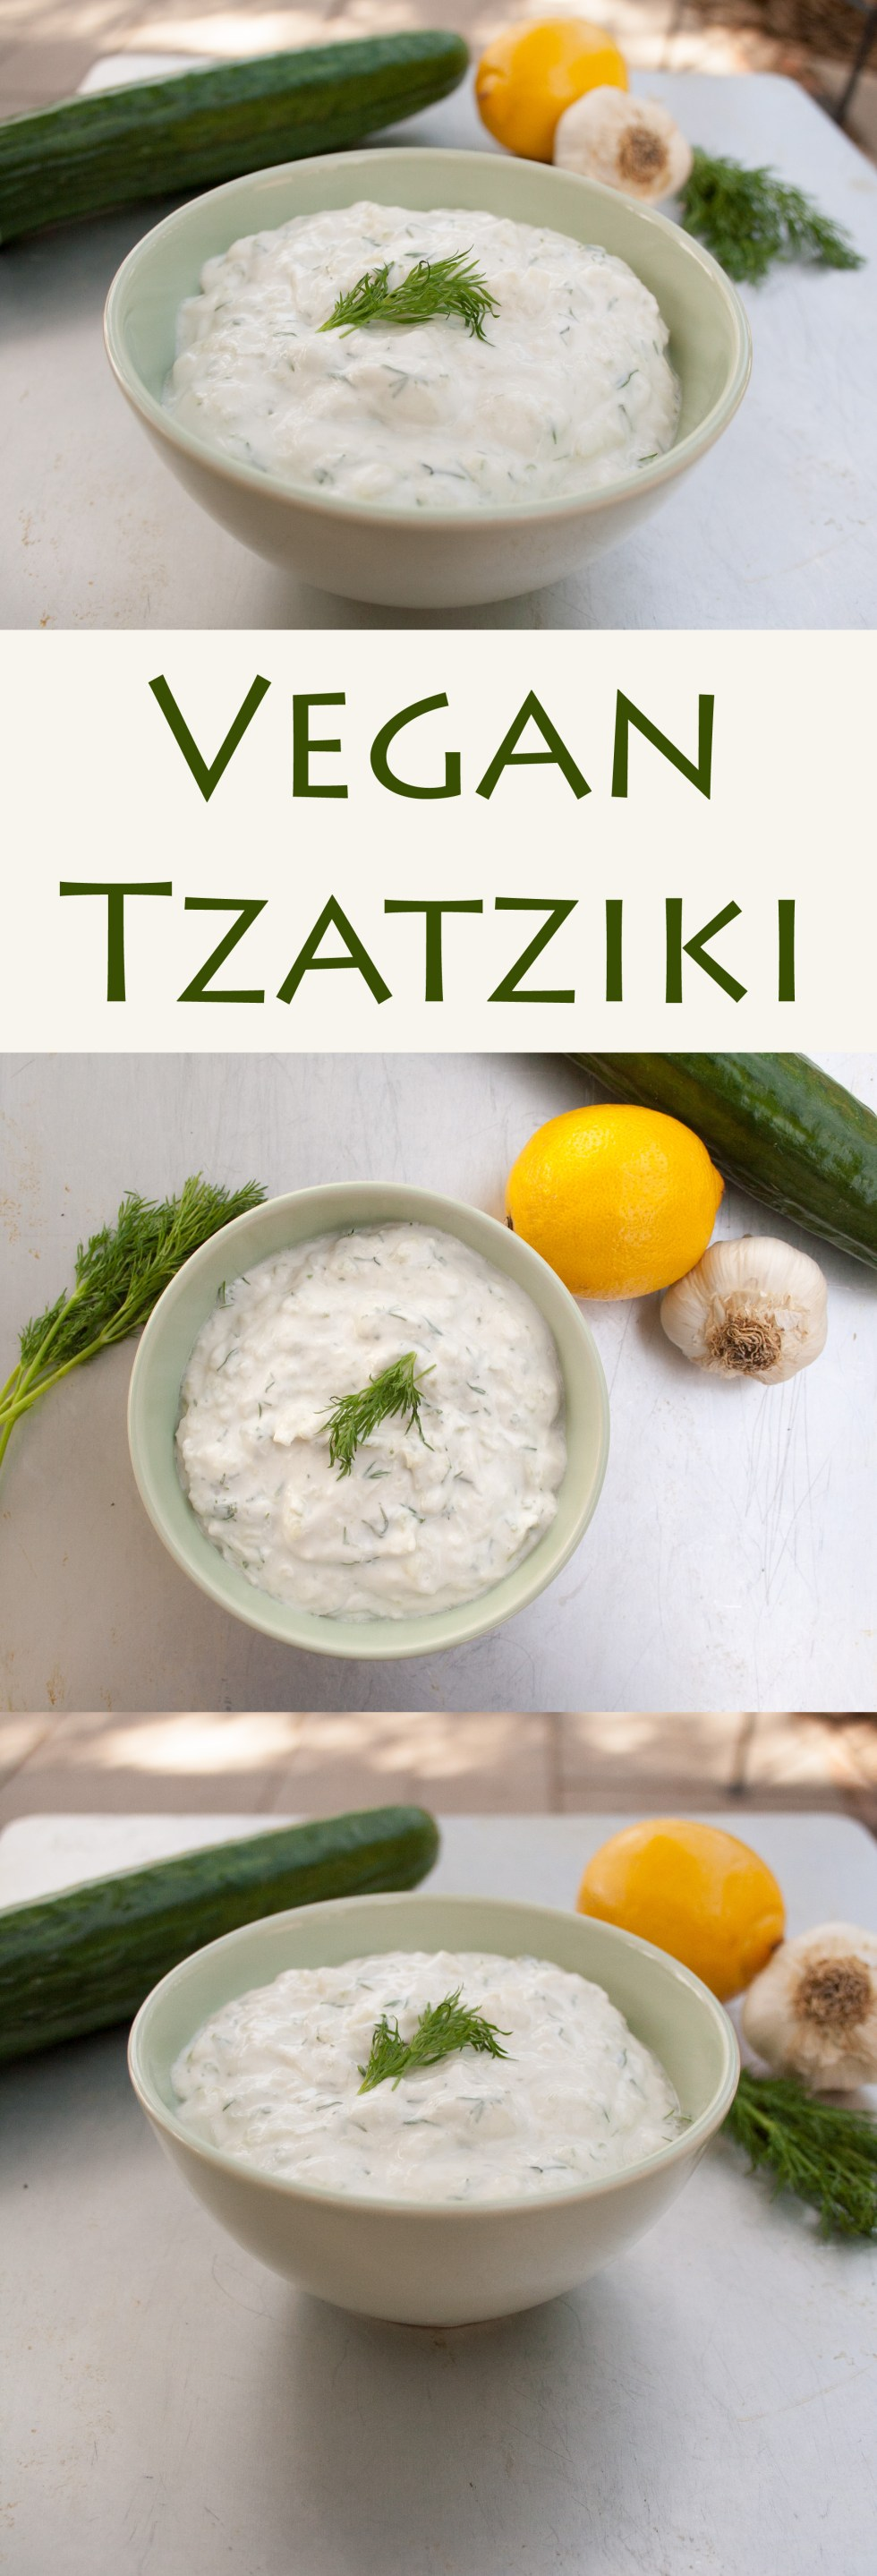 Vegan Tzatziki collage photo with three photos and text in between.